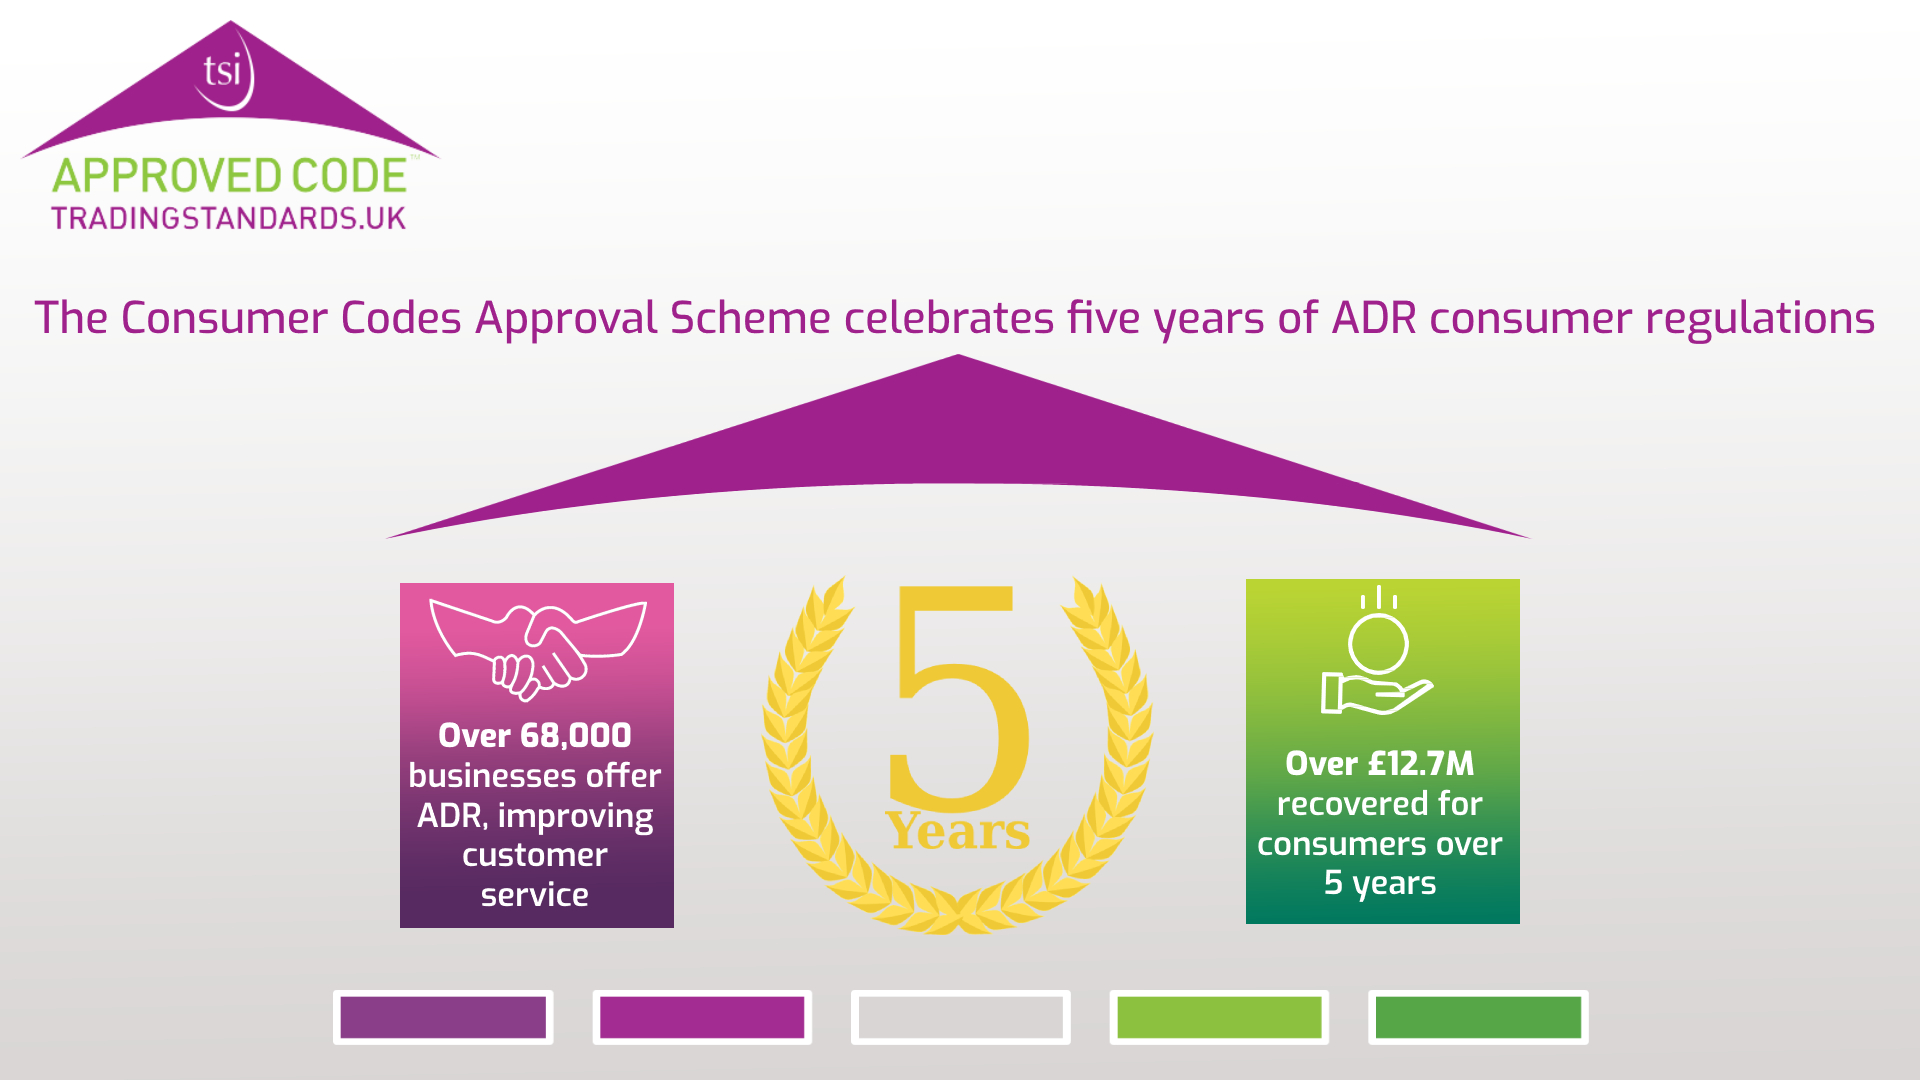 CCAS celebrates five years of ADR with £12.7M consumer recovery